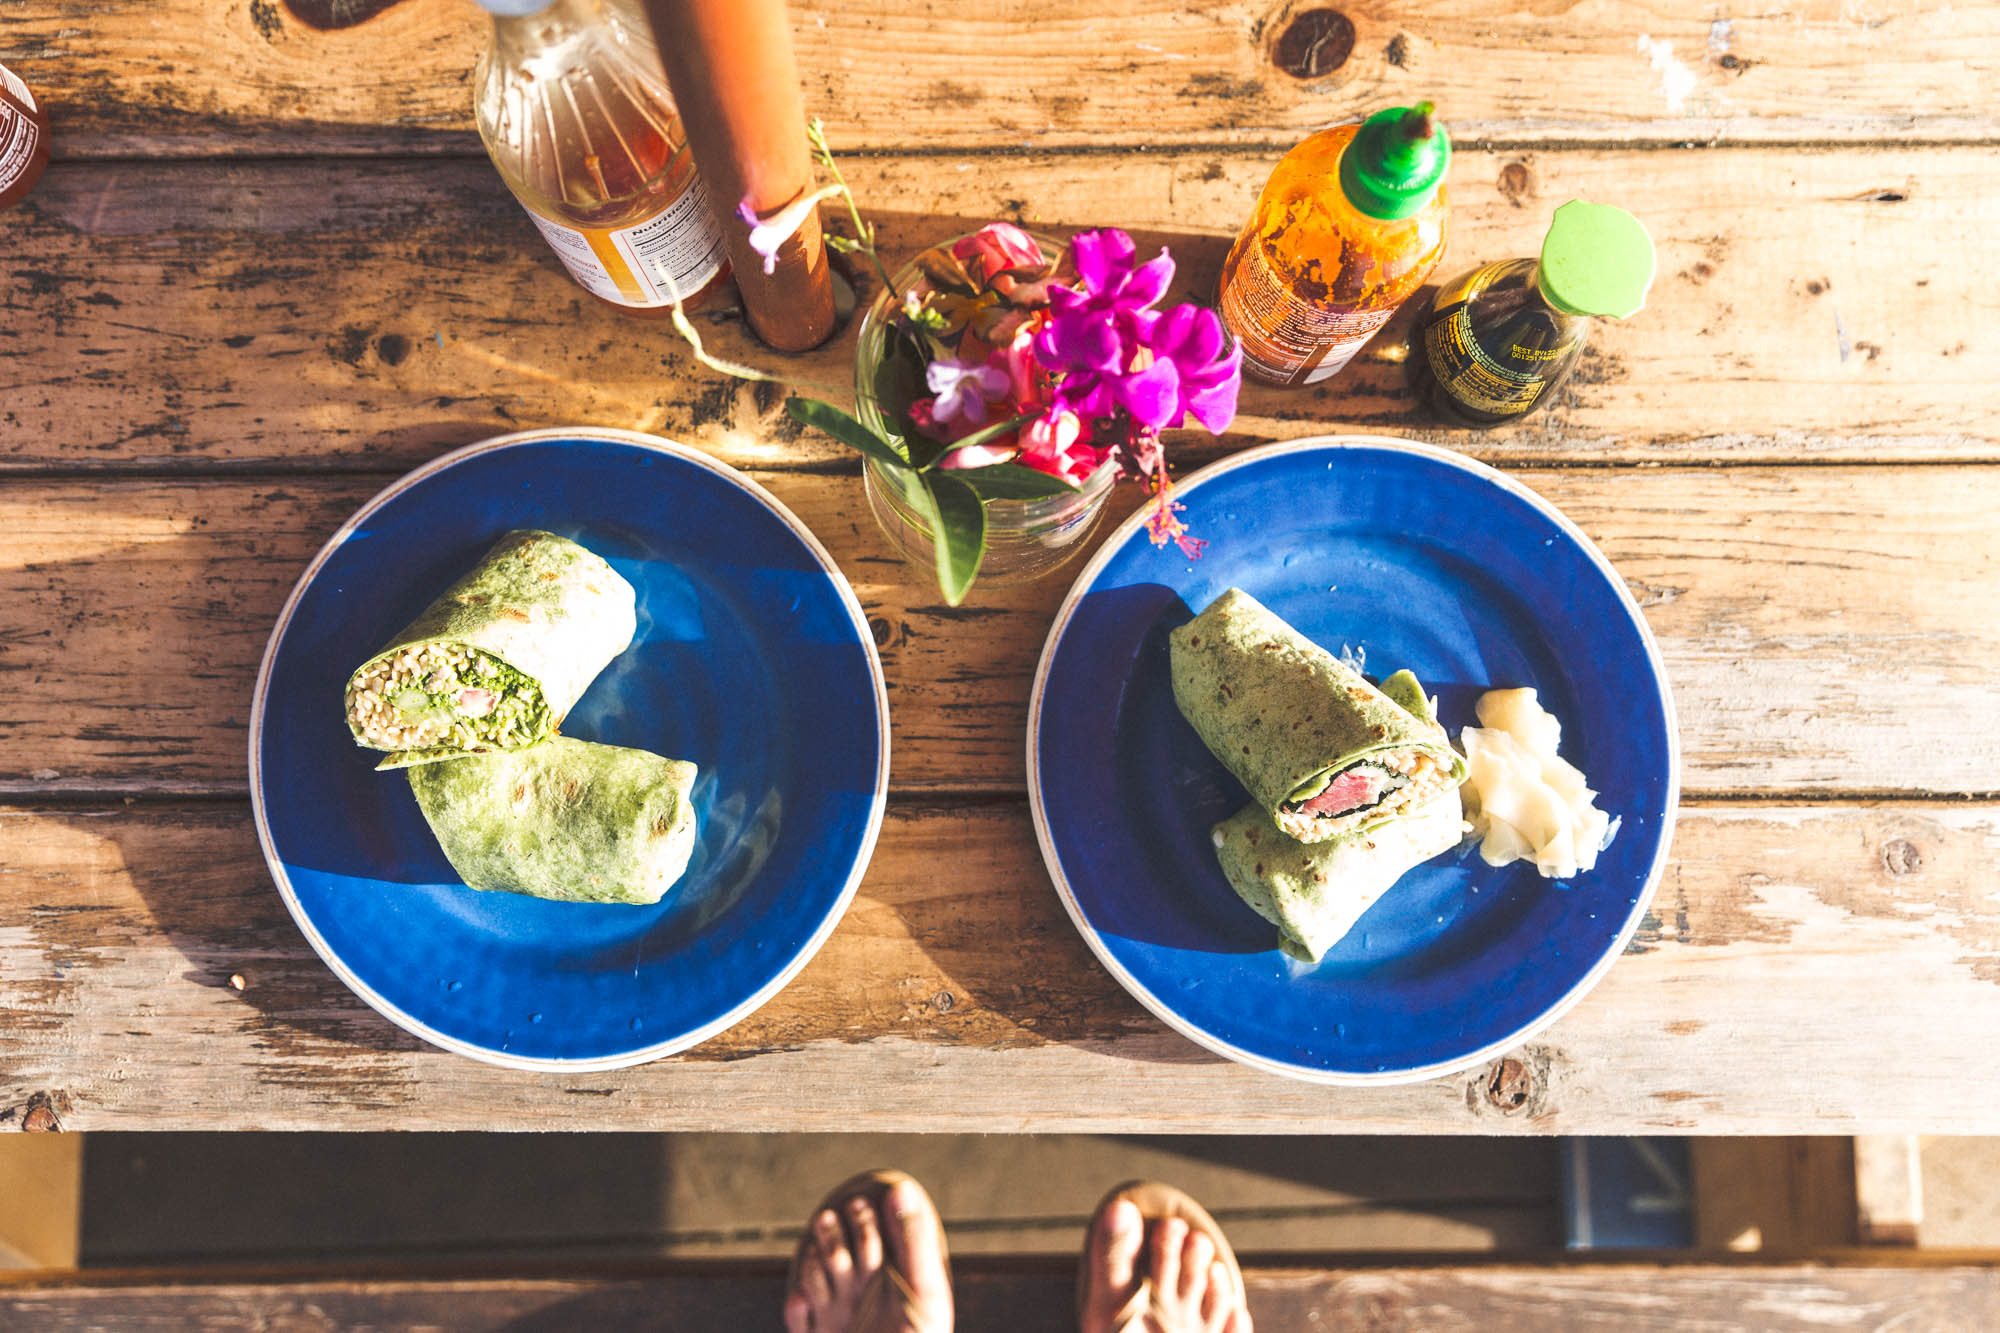 Mermaids Cafe Ahi Fish Burritos Kapaa Kauai Hawaii Travel Guide via Find Us Lost